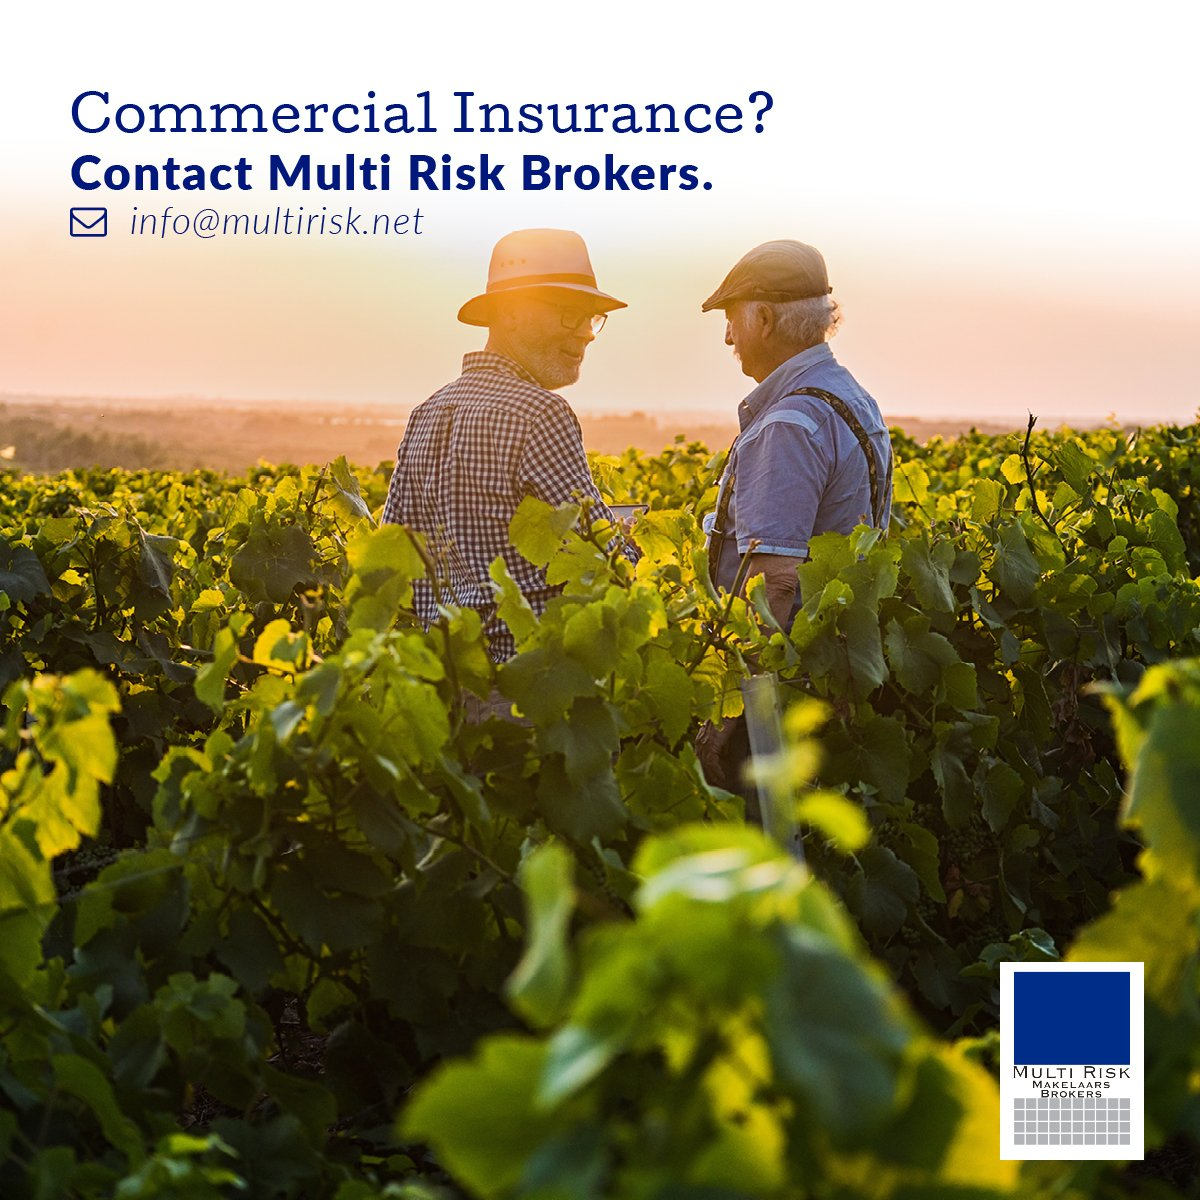 Cover for potential losses through unforeseen circumstances. Be ready! http://www.multirisk.net  #CommercialInsurance #BusinessCover pic.twitter.com/VfkdjGULOF